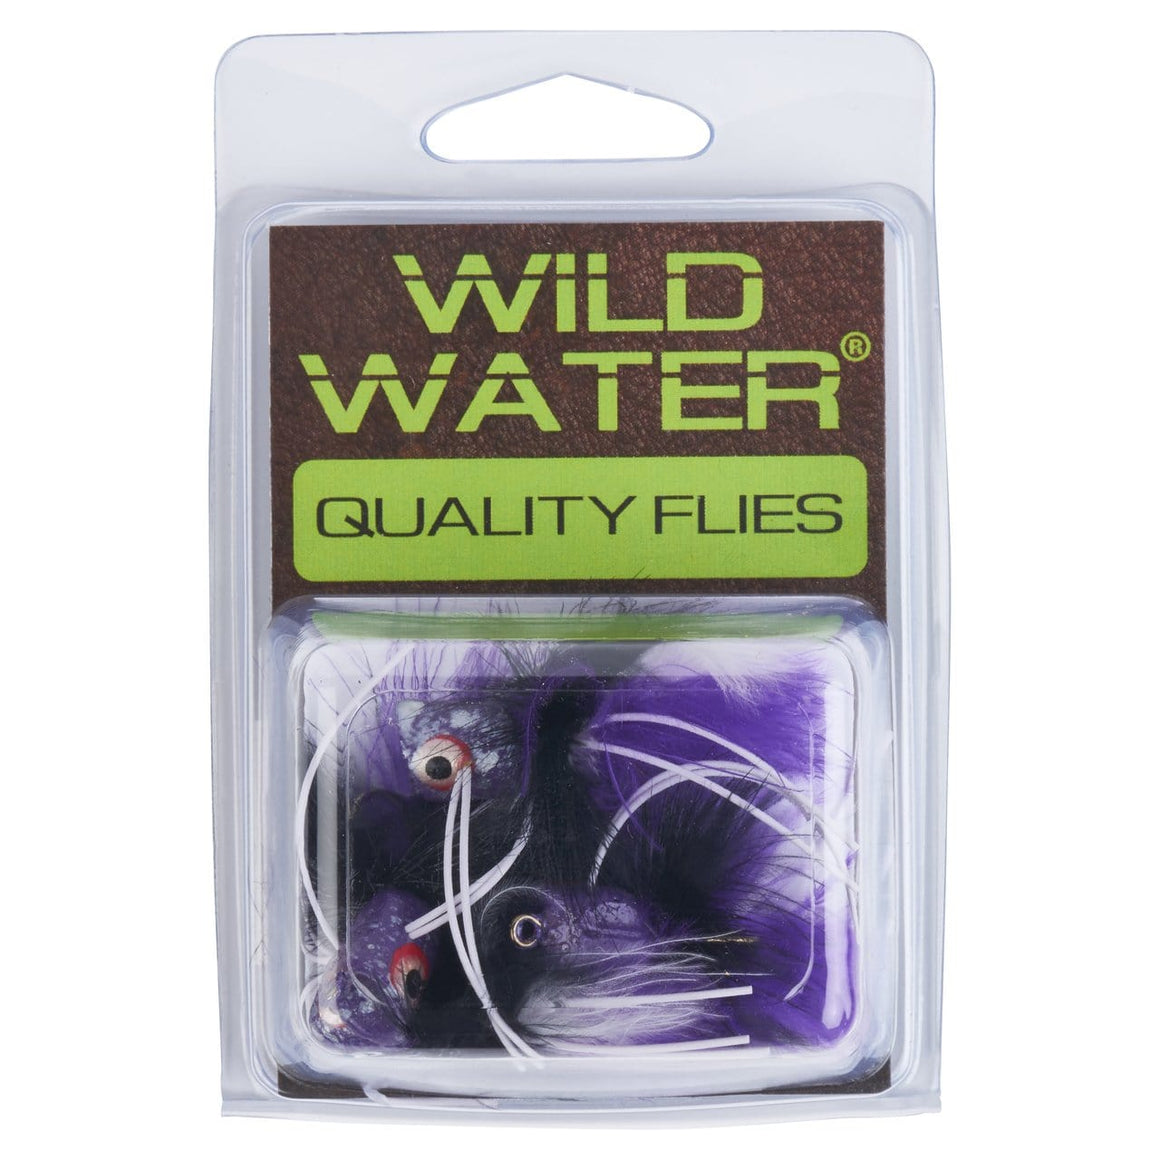 Wild Water Purple and Black Little Fatty by Pultz Poppers, Size 6, Qty. 4 - Wild Water Fly Fishing